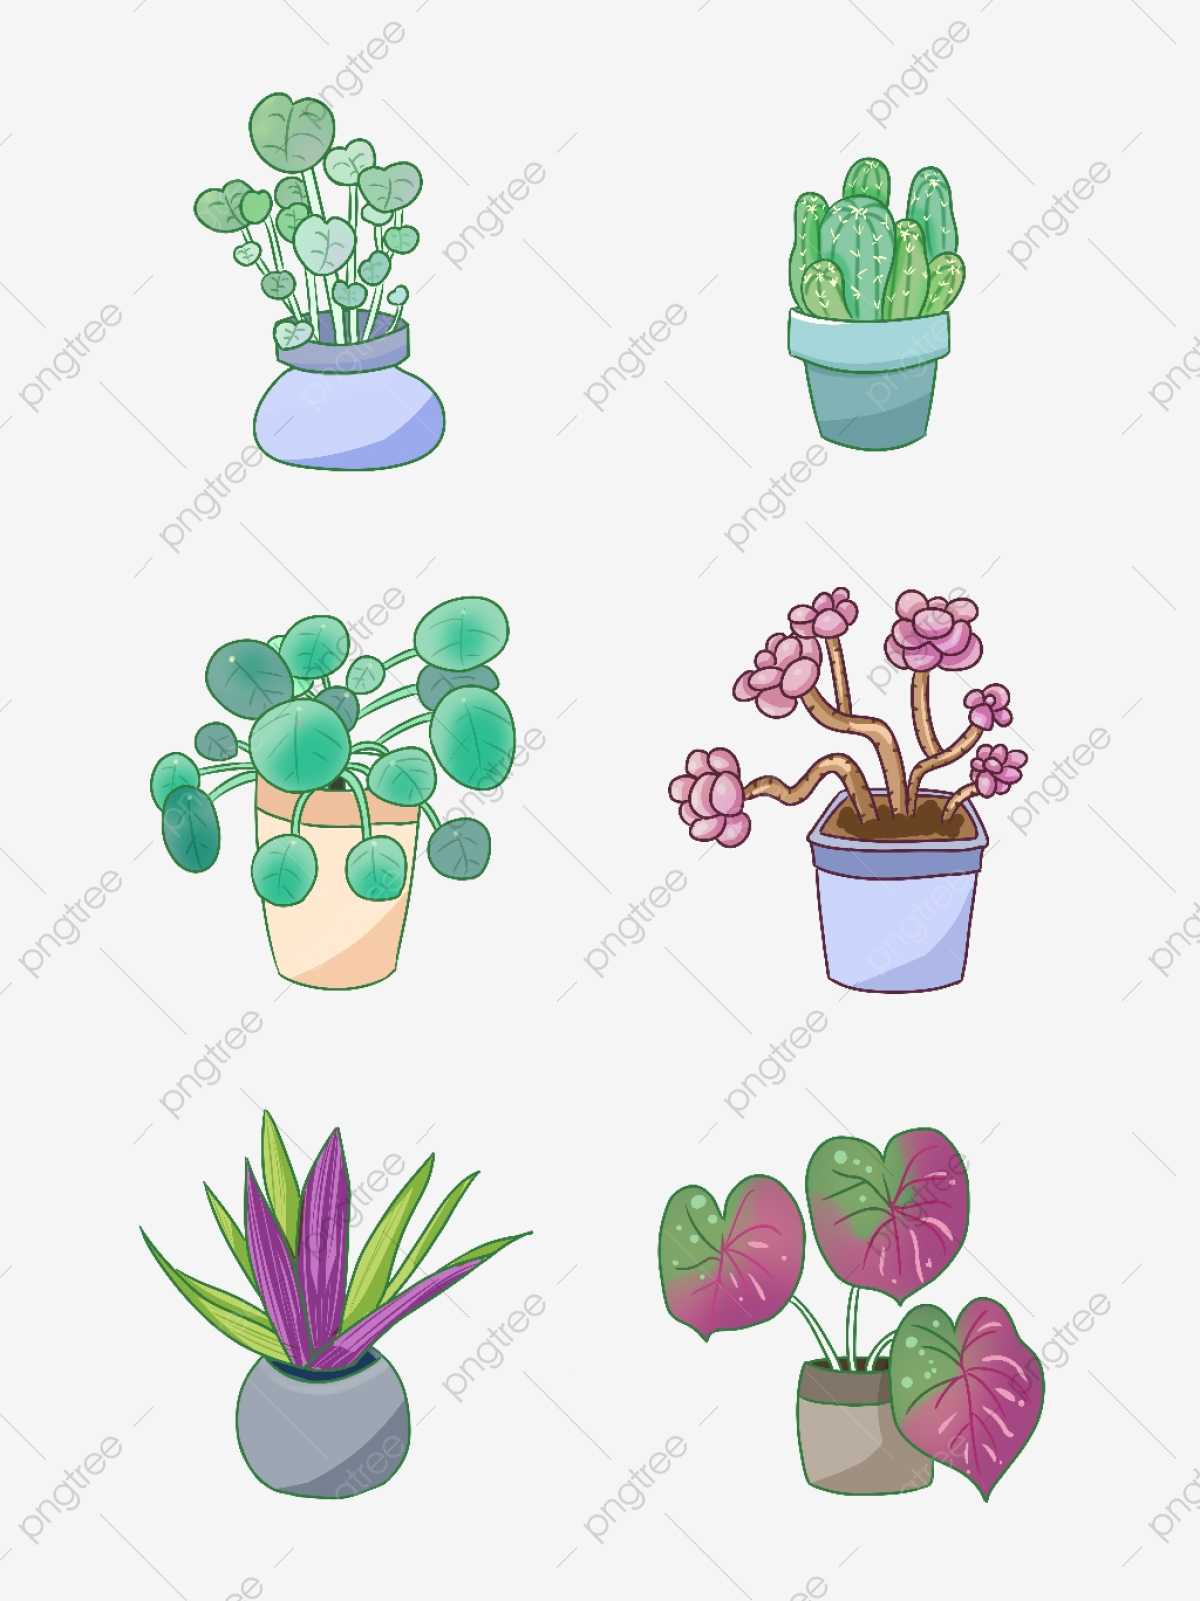 Hand Drawn Cute Plants Set Illustration Hand Painted Cute Plant Png Transparent Clipart Image And Psd File For Free Download